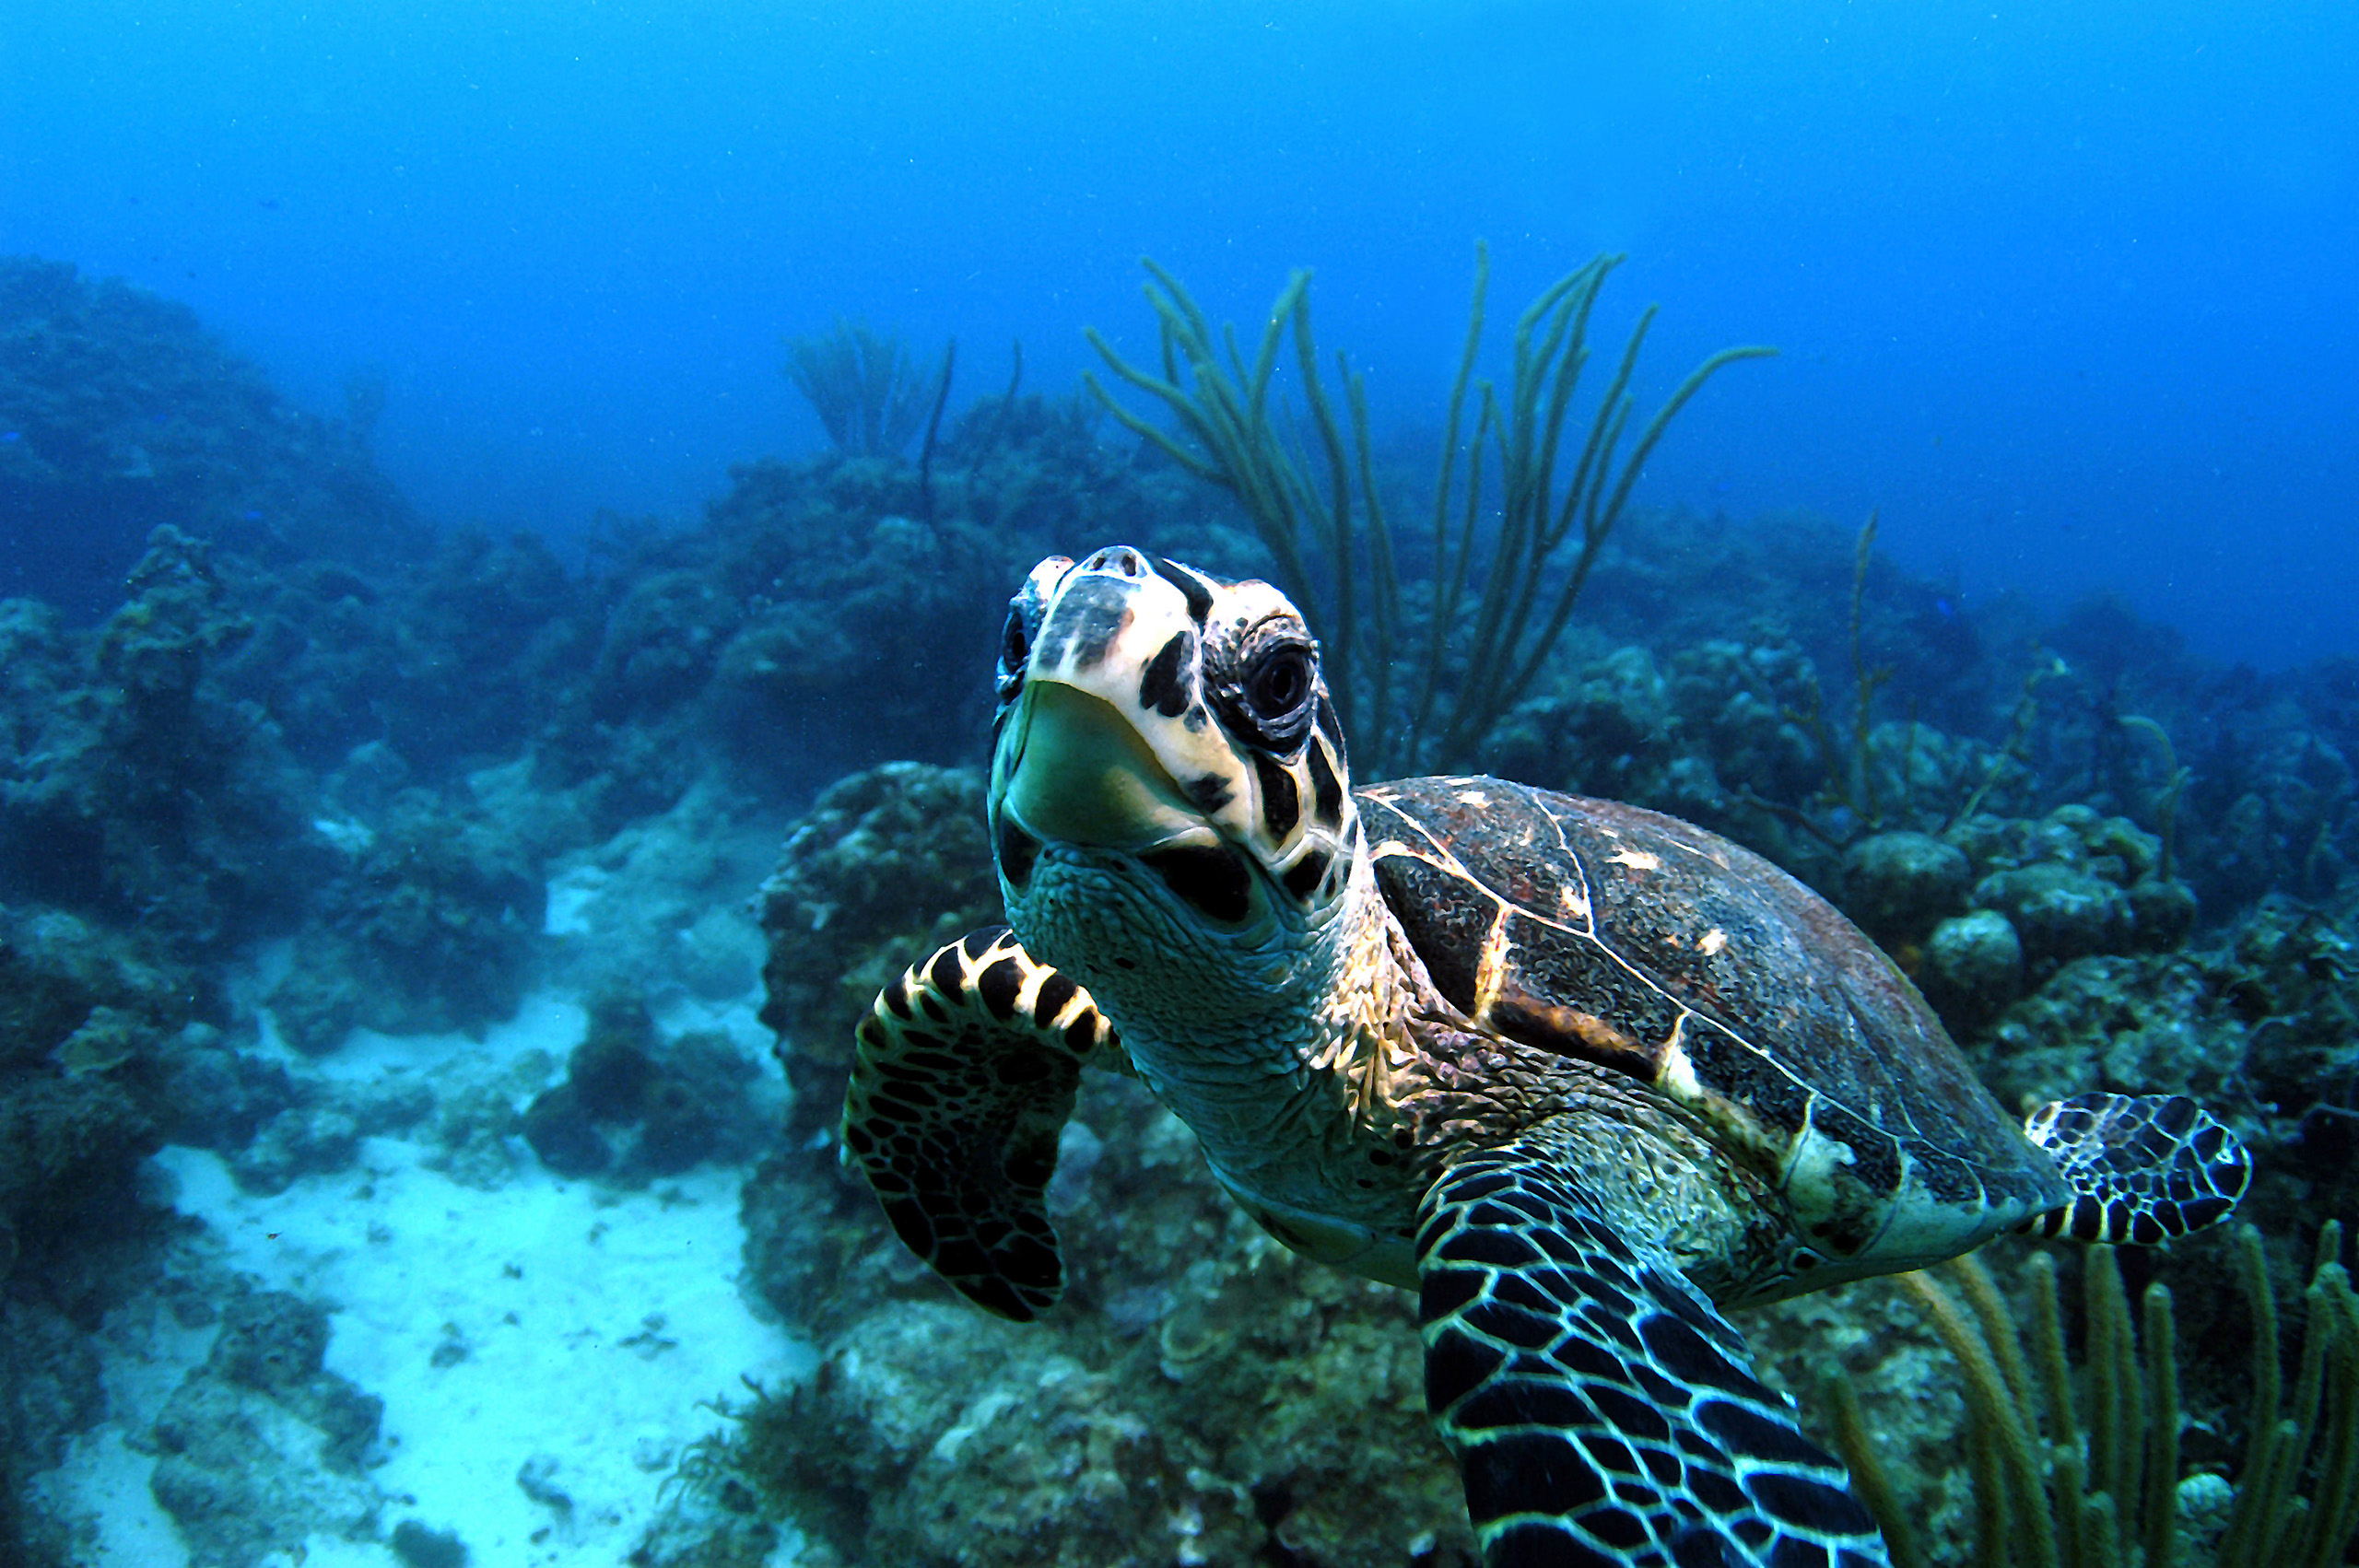 Hawksbill turtle, British Virgin Islands. These turtles are found throughout the world's tropical oceans, where they feed on sponges that live in crevices in coral reefs. They are most threatened by the illegal trading of their shells, which are used to make jewelry and other ornaments.